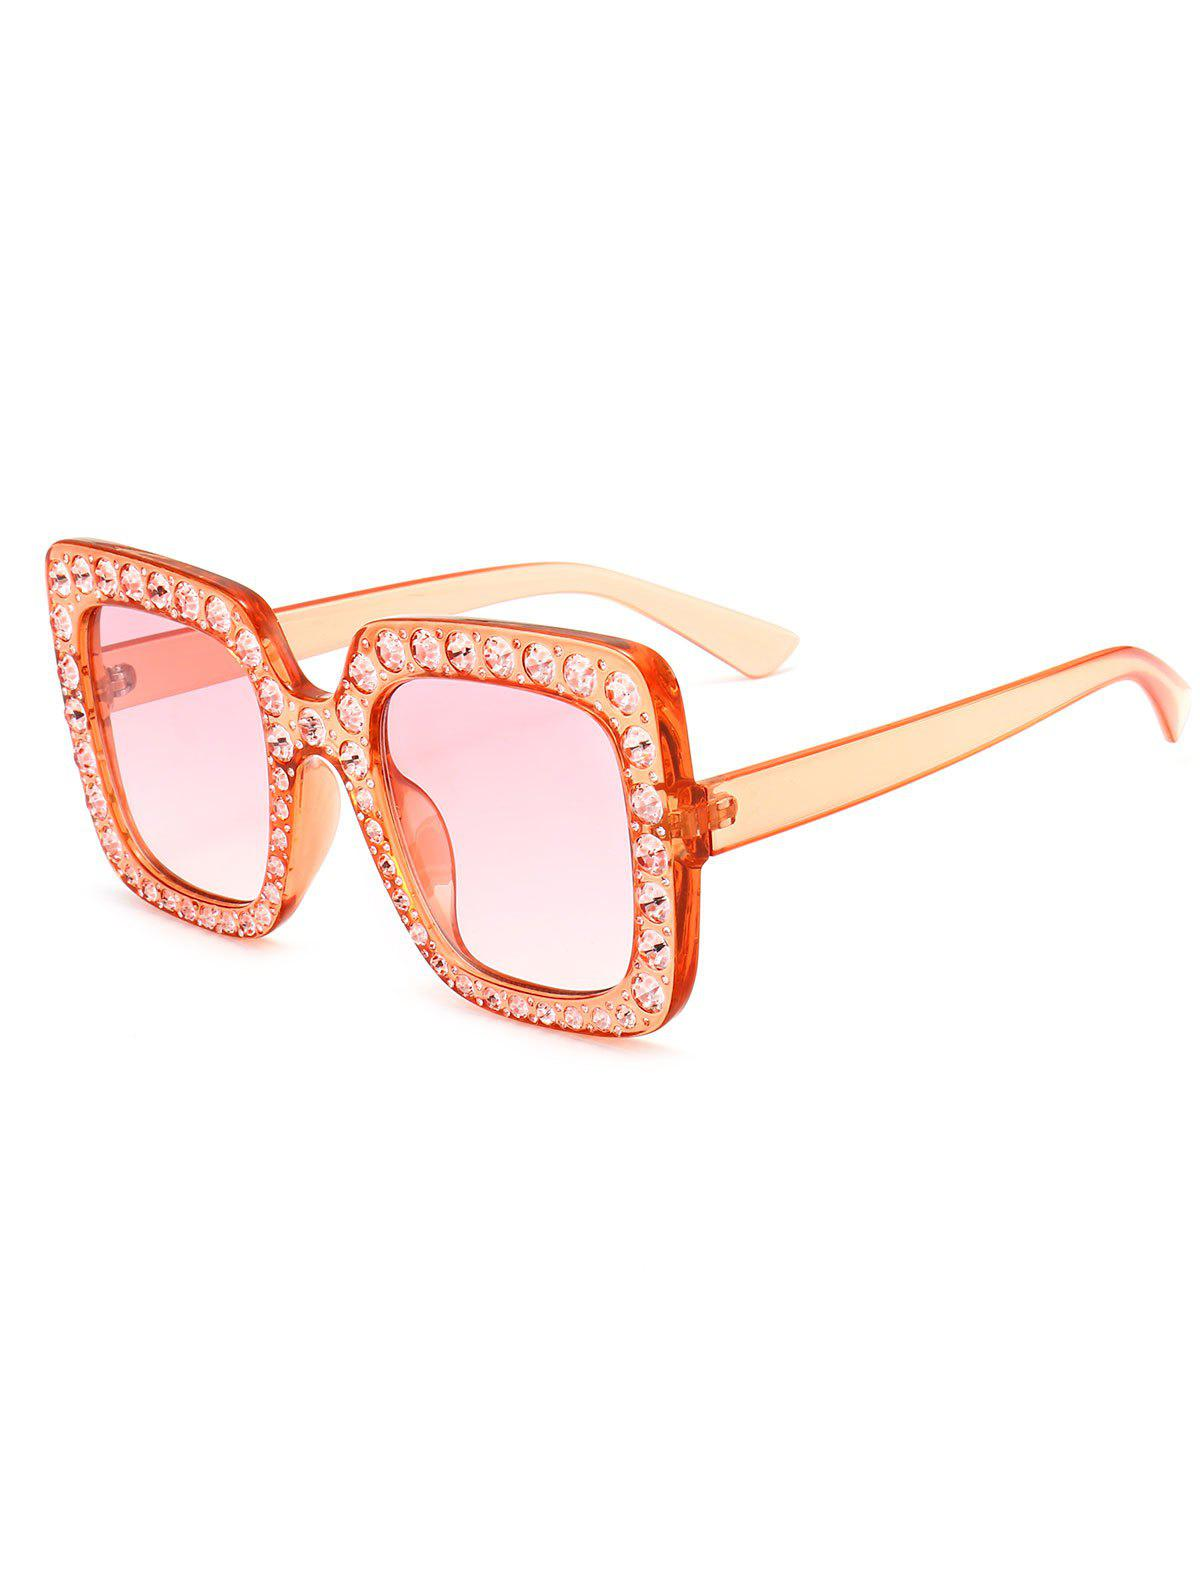 Anti UV Rhinestone Decorated Oversized Square Sunglasses - PINK FRAME/PINK LENS